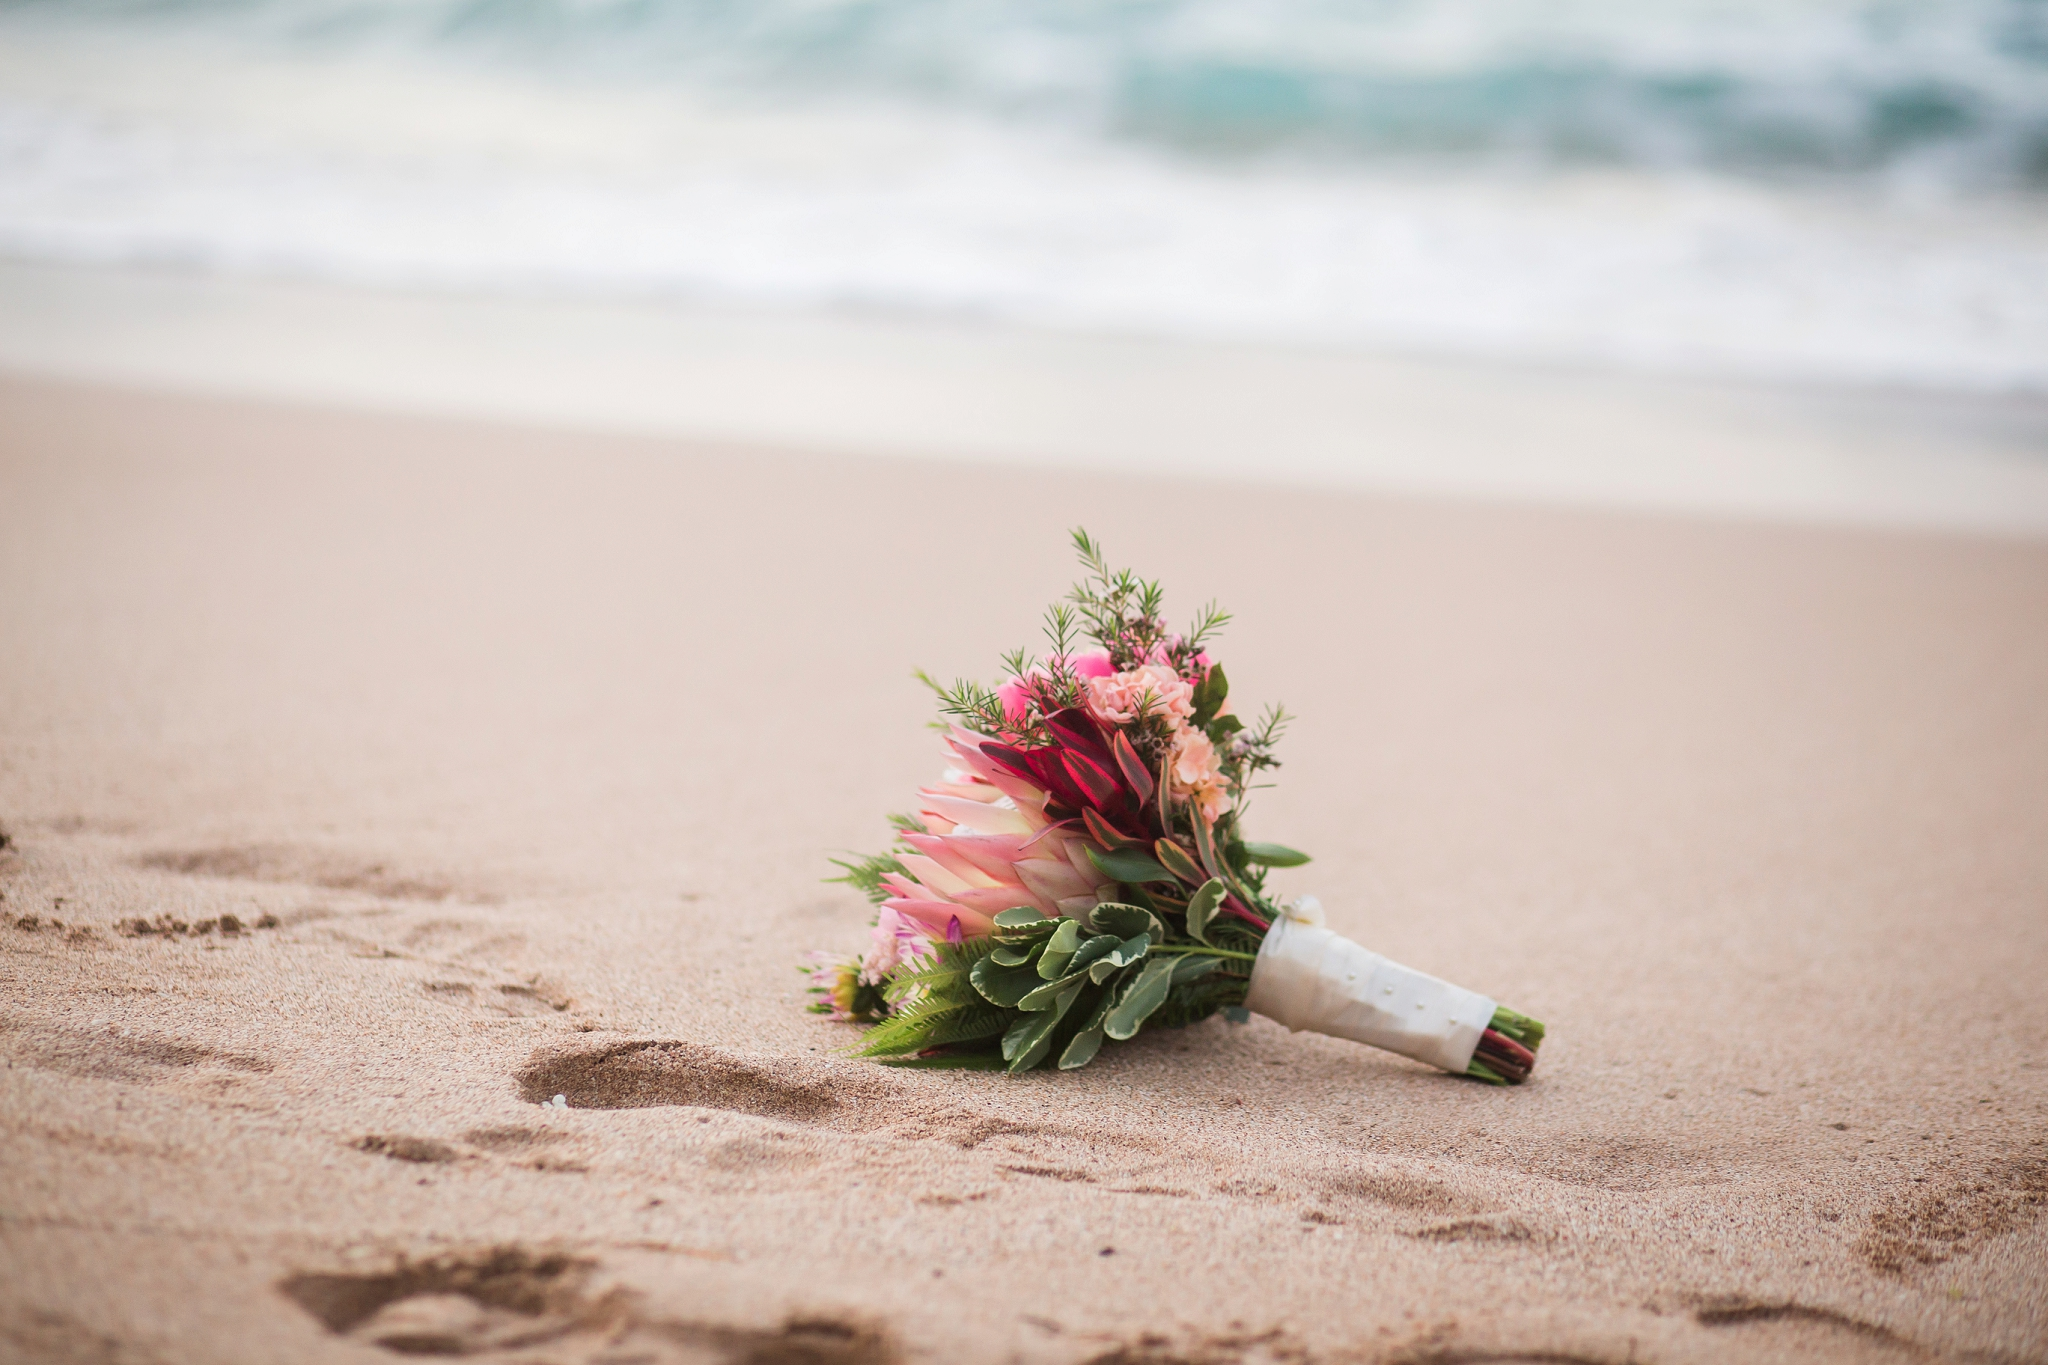 Maui_wedding_photographer_hawaii_destination_vannessa_kralovic (8).jpg